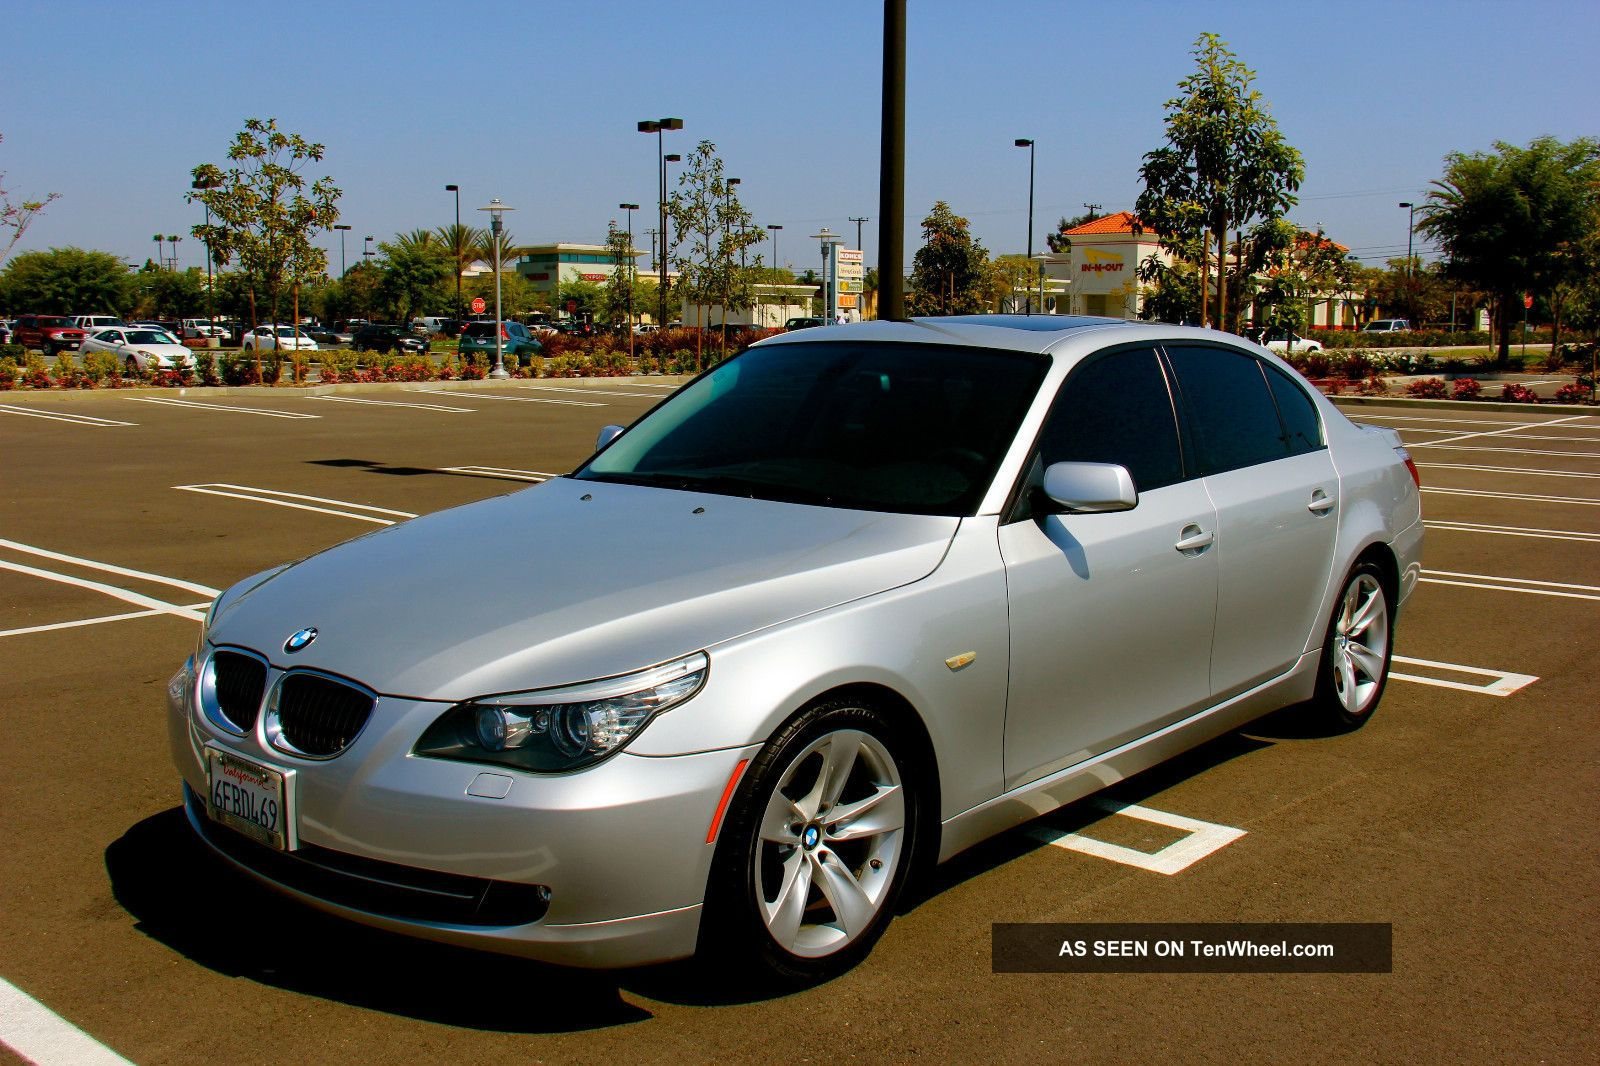 2008 Bmw 528i Sport Package Cpo 5-Series photo